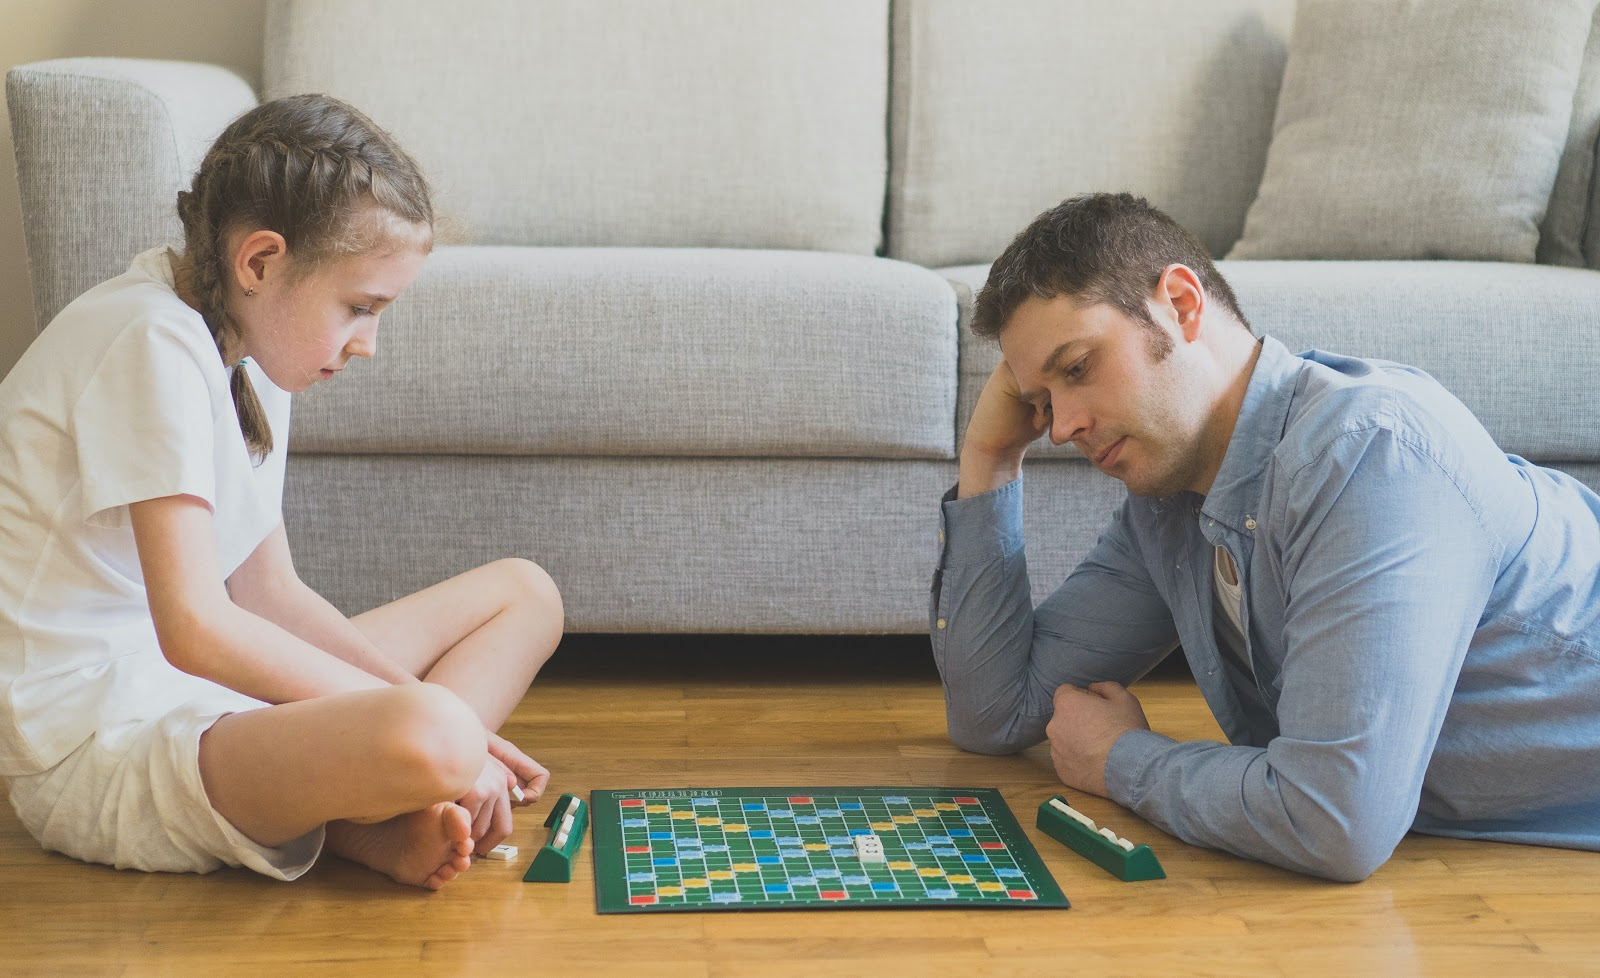 A father and daughter play scrabble on the floor.